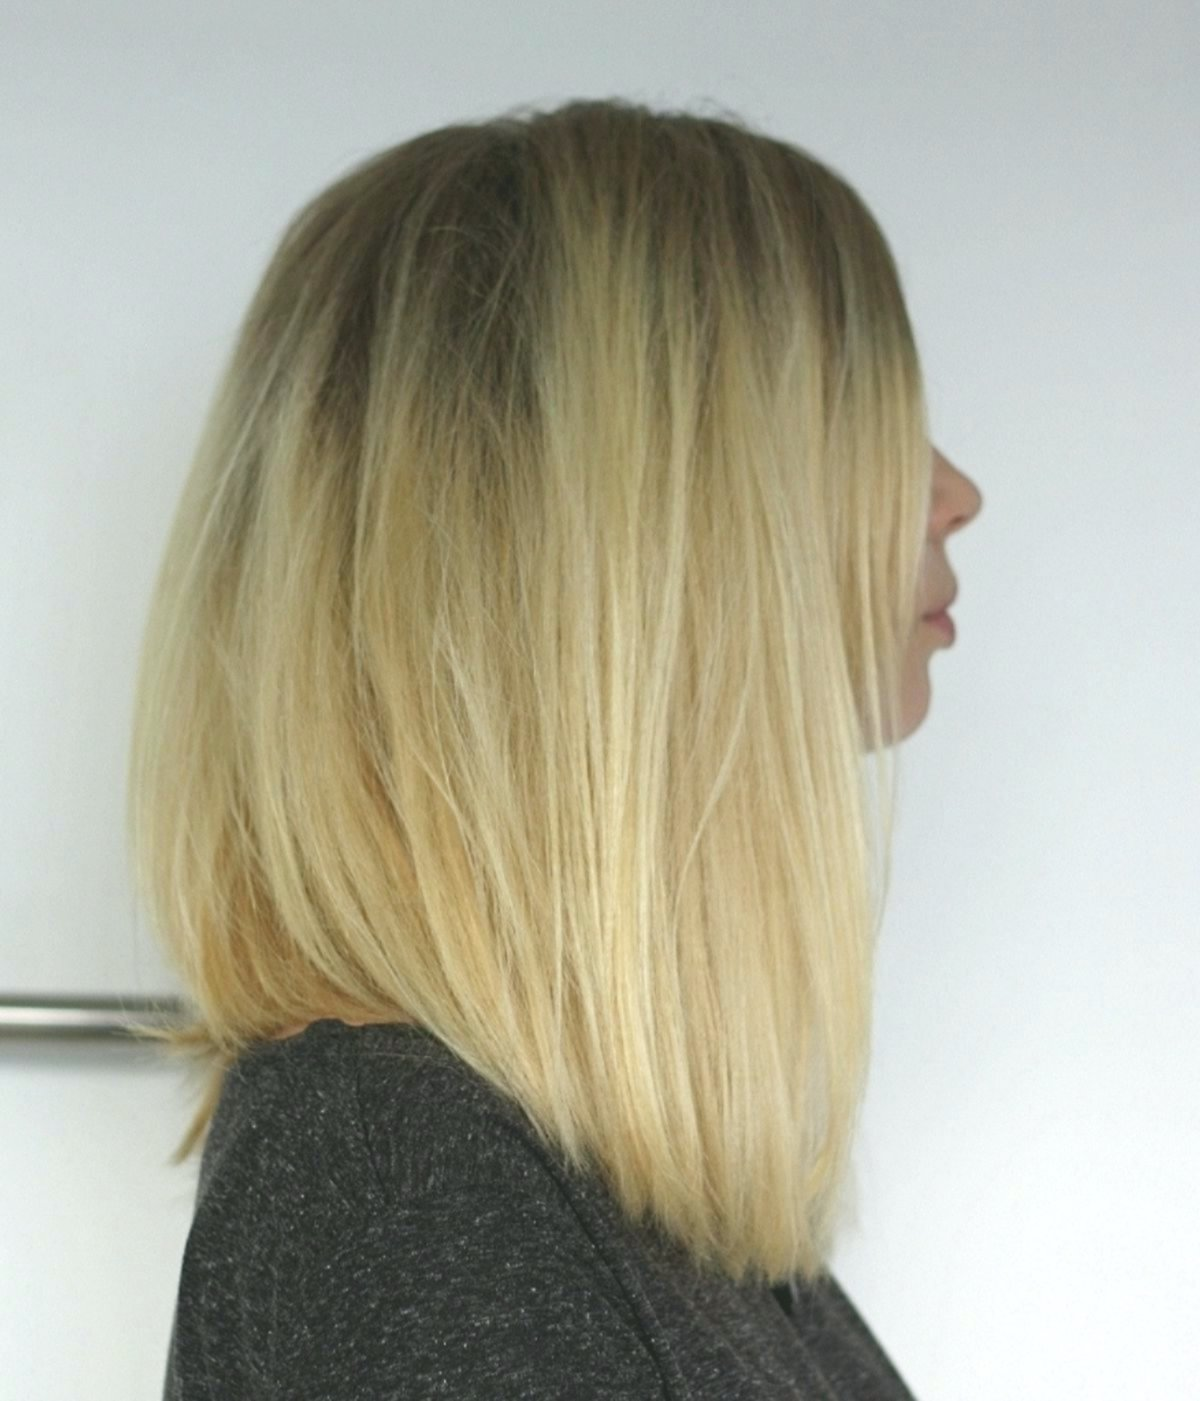 excellent hairstyle front short back long model-elegant hairstyle front short back long architecture